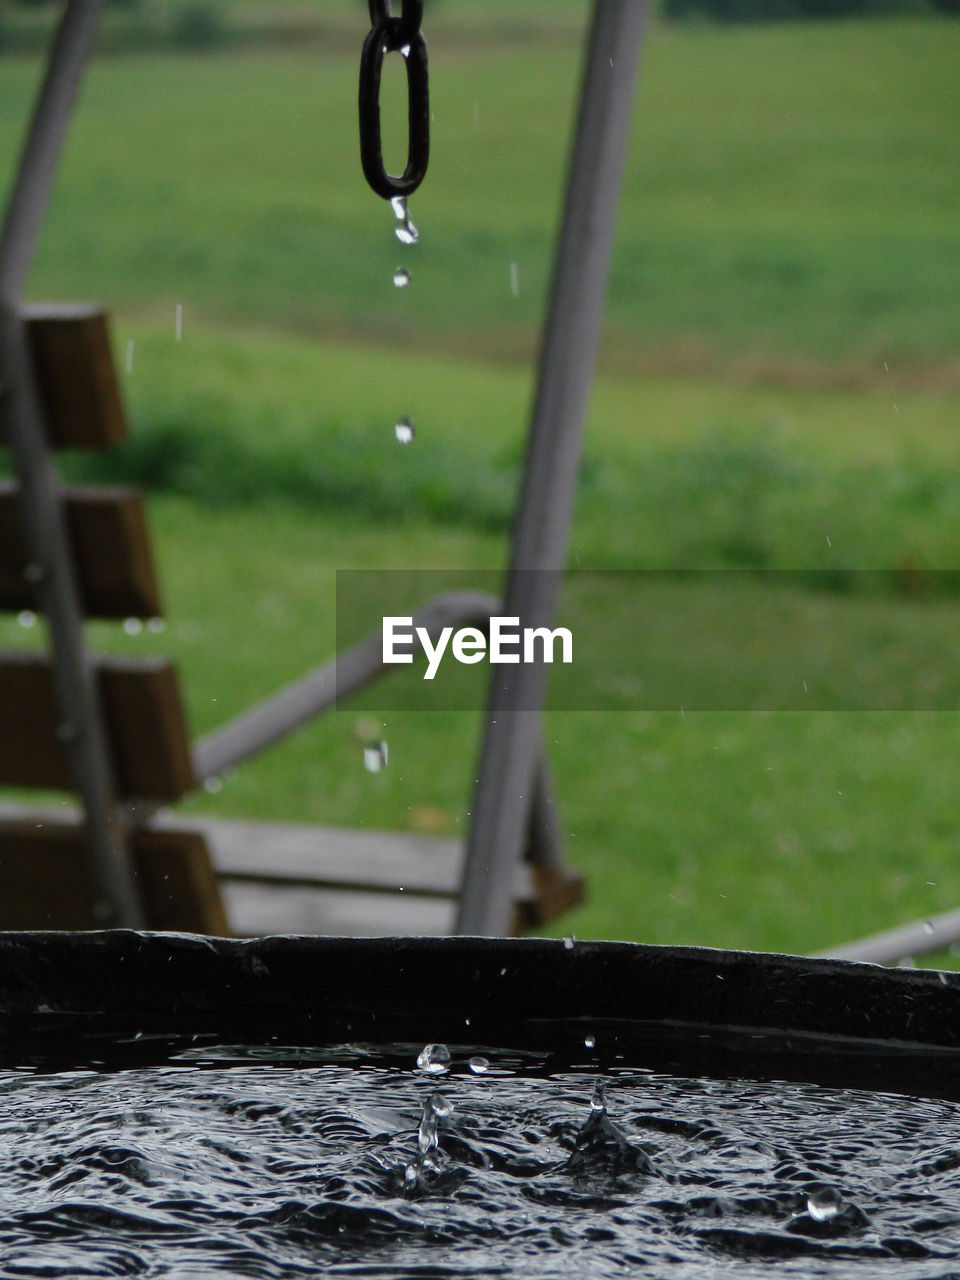 water, drop, motion, focus on foreground, wet, fountain, no people, dripping, splashing, nature, drinking fountain, outdoors, raindrop, running water, day, high-speed photography, beauty in nature, shower head, grass, close-up, splashing droplet